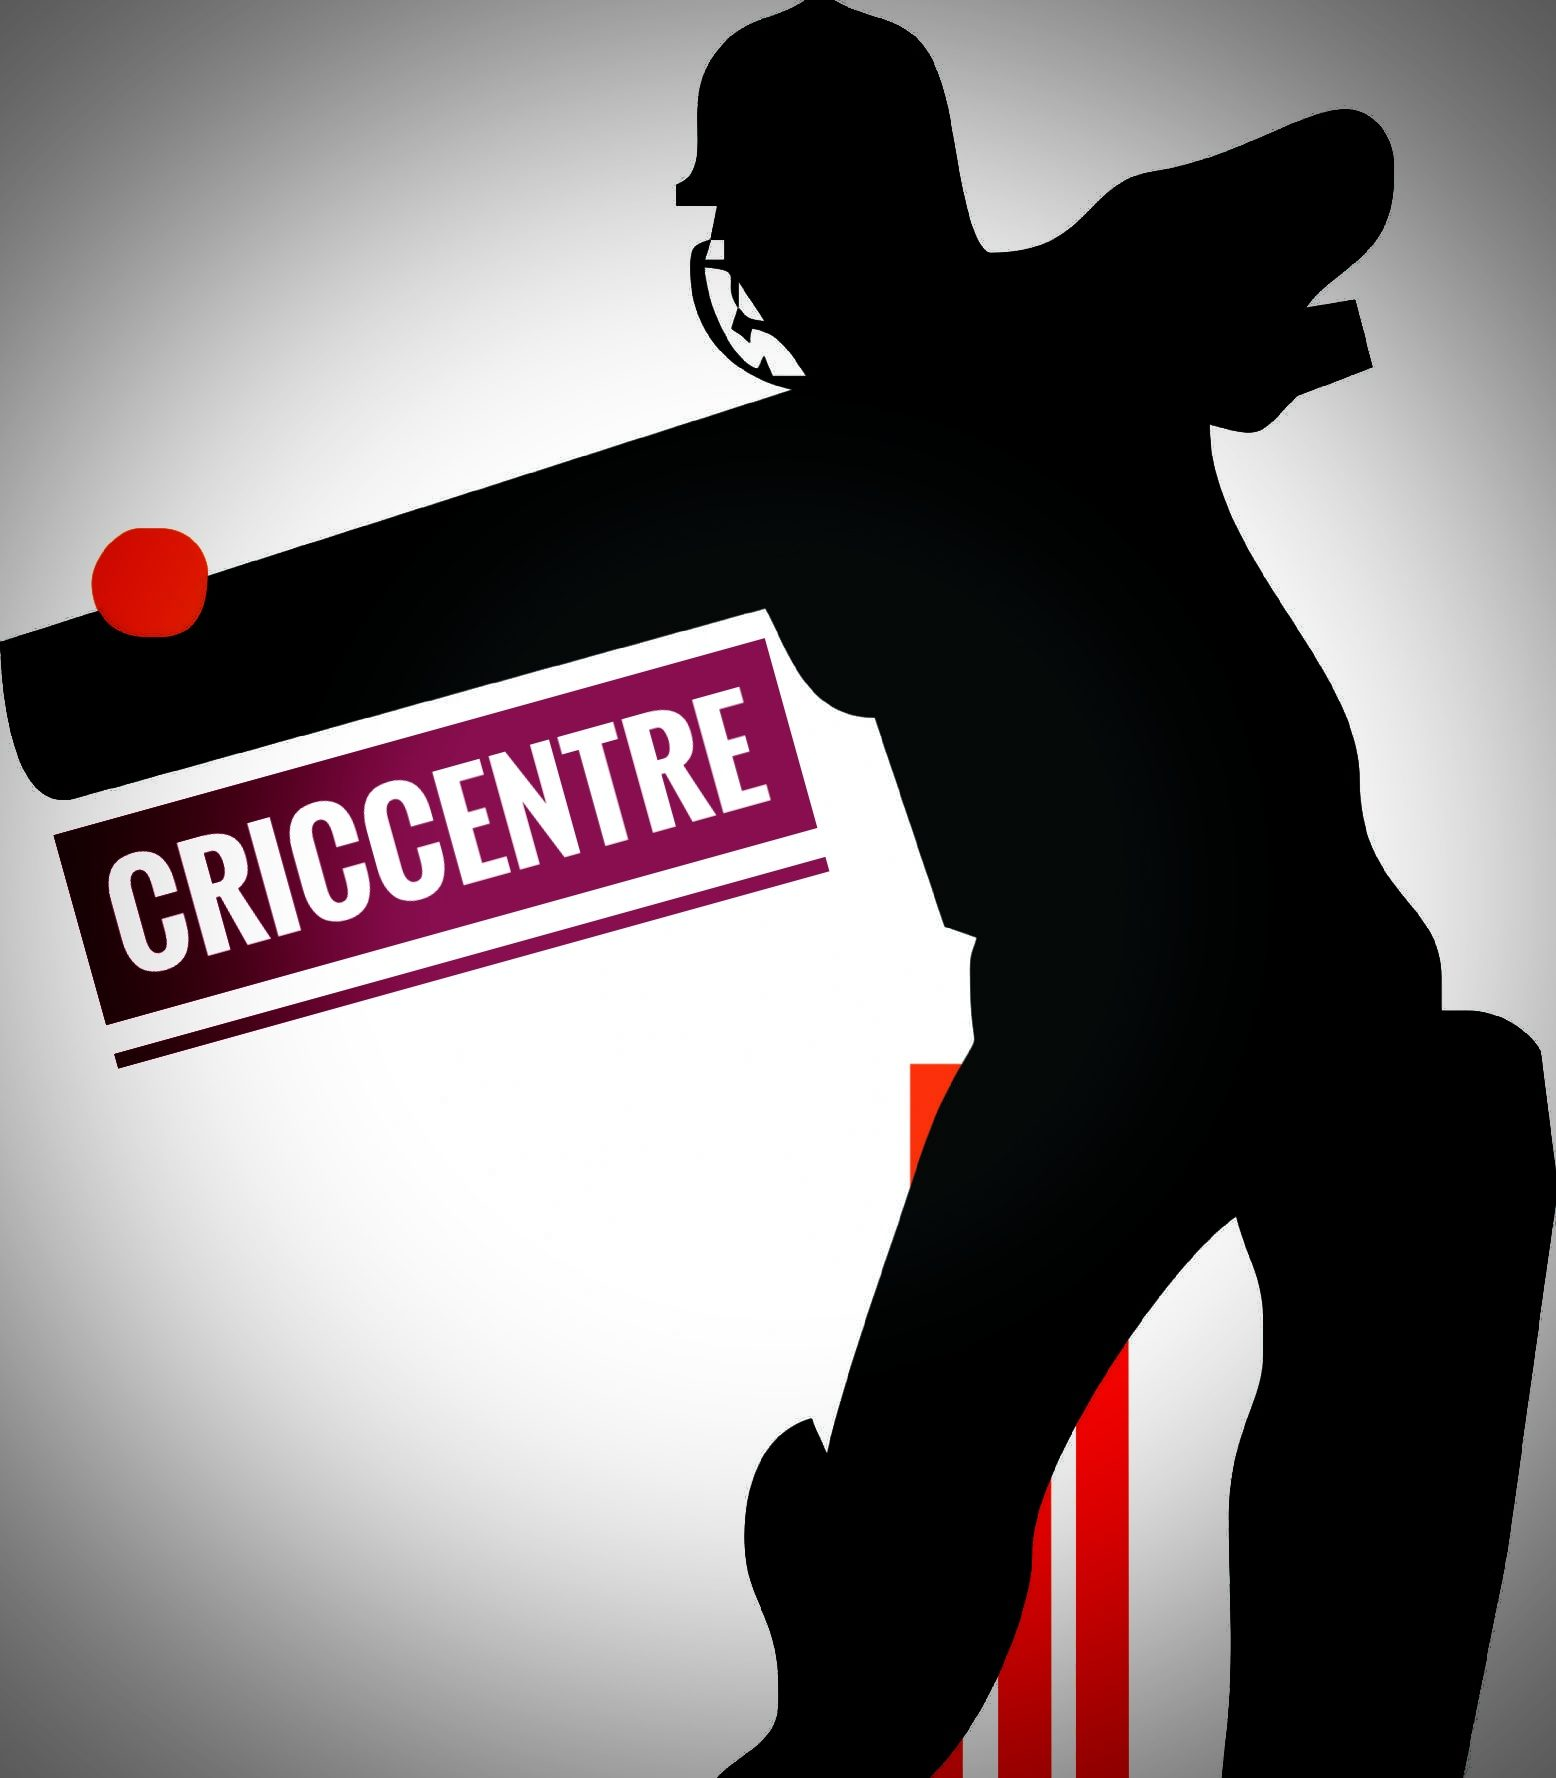 CricCentre